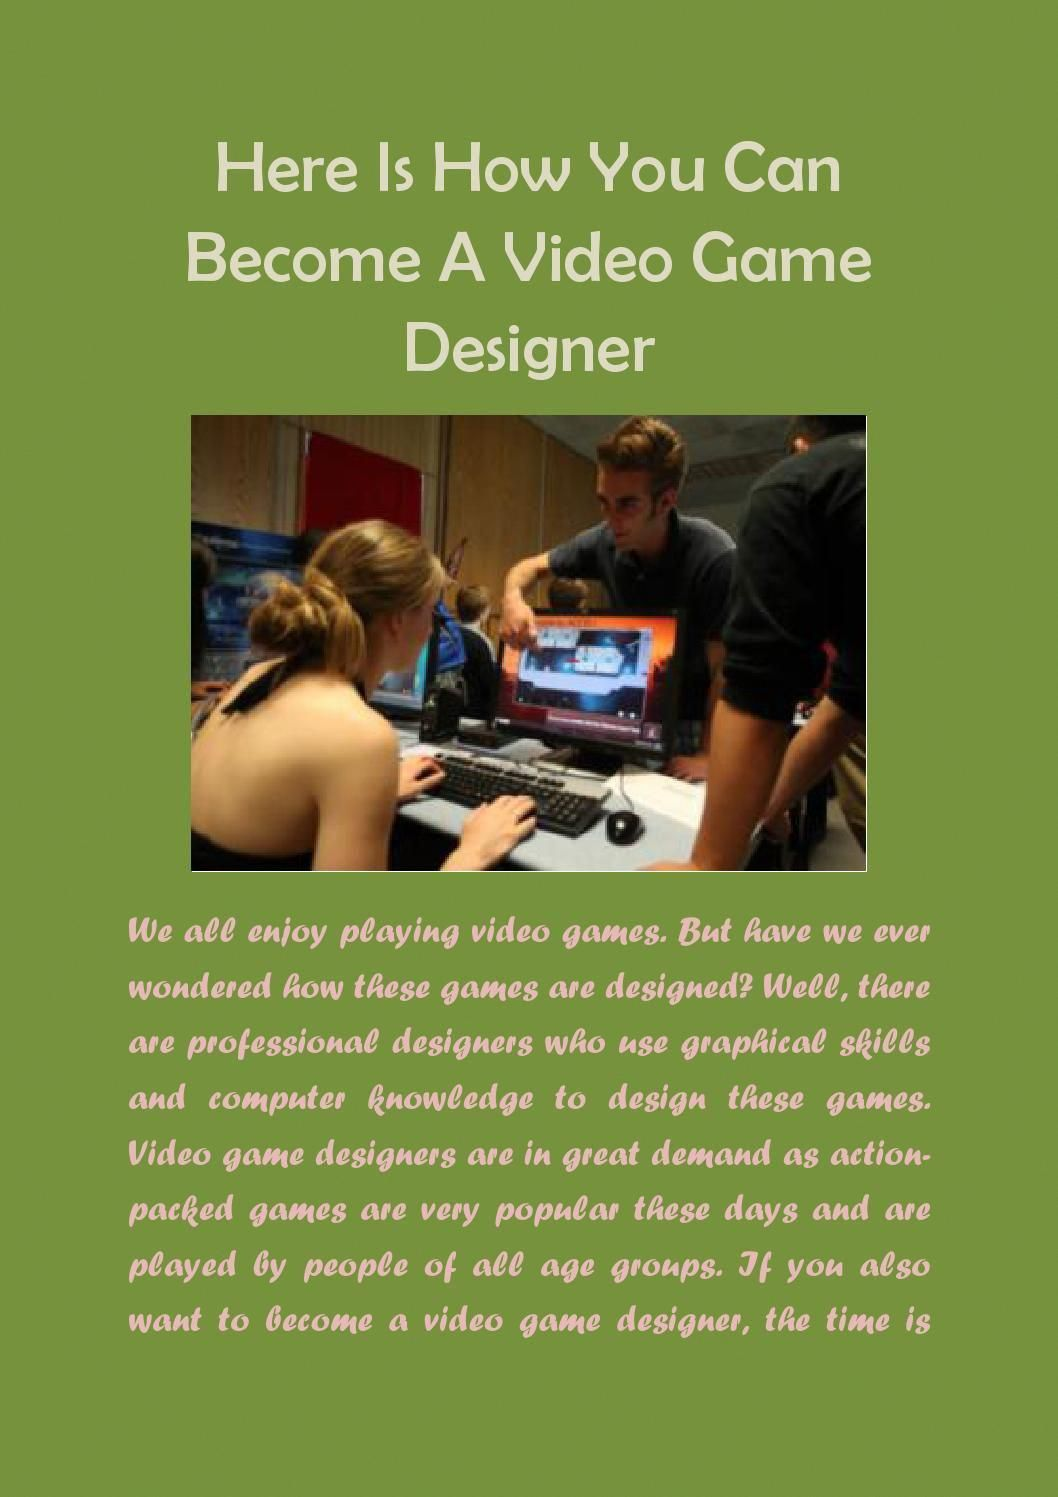 Video Game Design is one of the most exhilarating jobs out